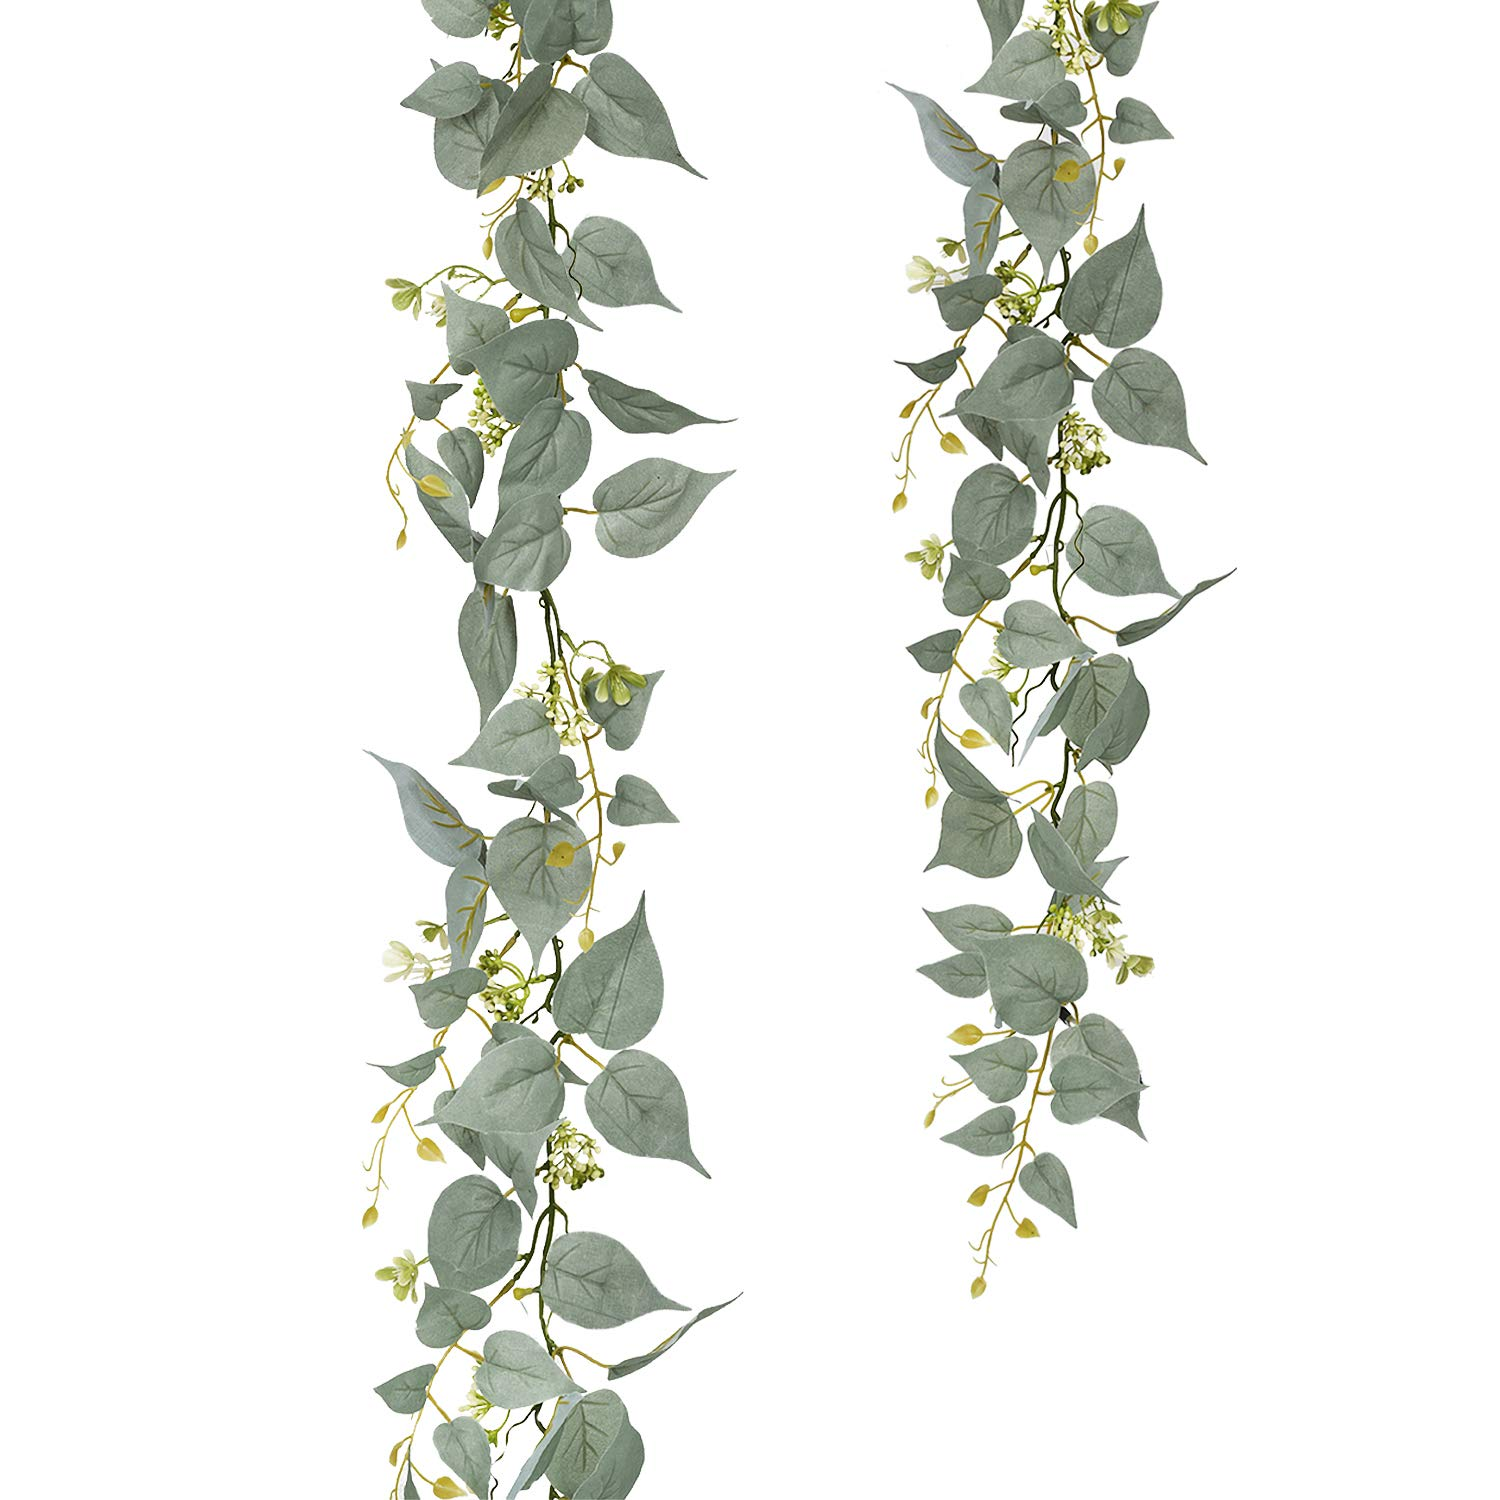 Hanging Vine Garland Greenery 6 Ft Arrificial Vines Plant Floral Garland Wedding Vine Leaves String In Green For Indoor Outdoor Wedding Decor Party Supplies Greenery Crowns Wreath Walmart Com Walmart Com